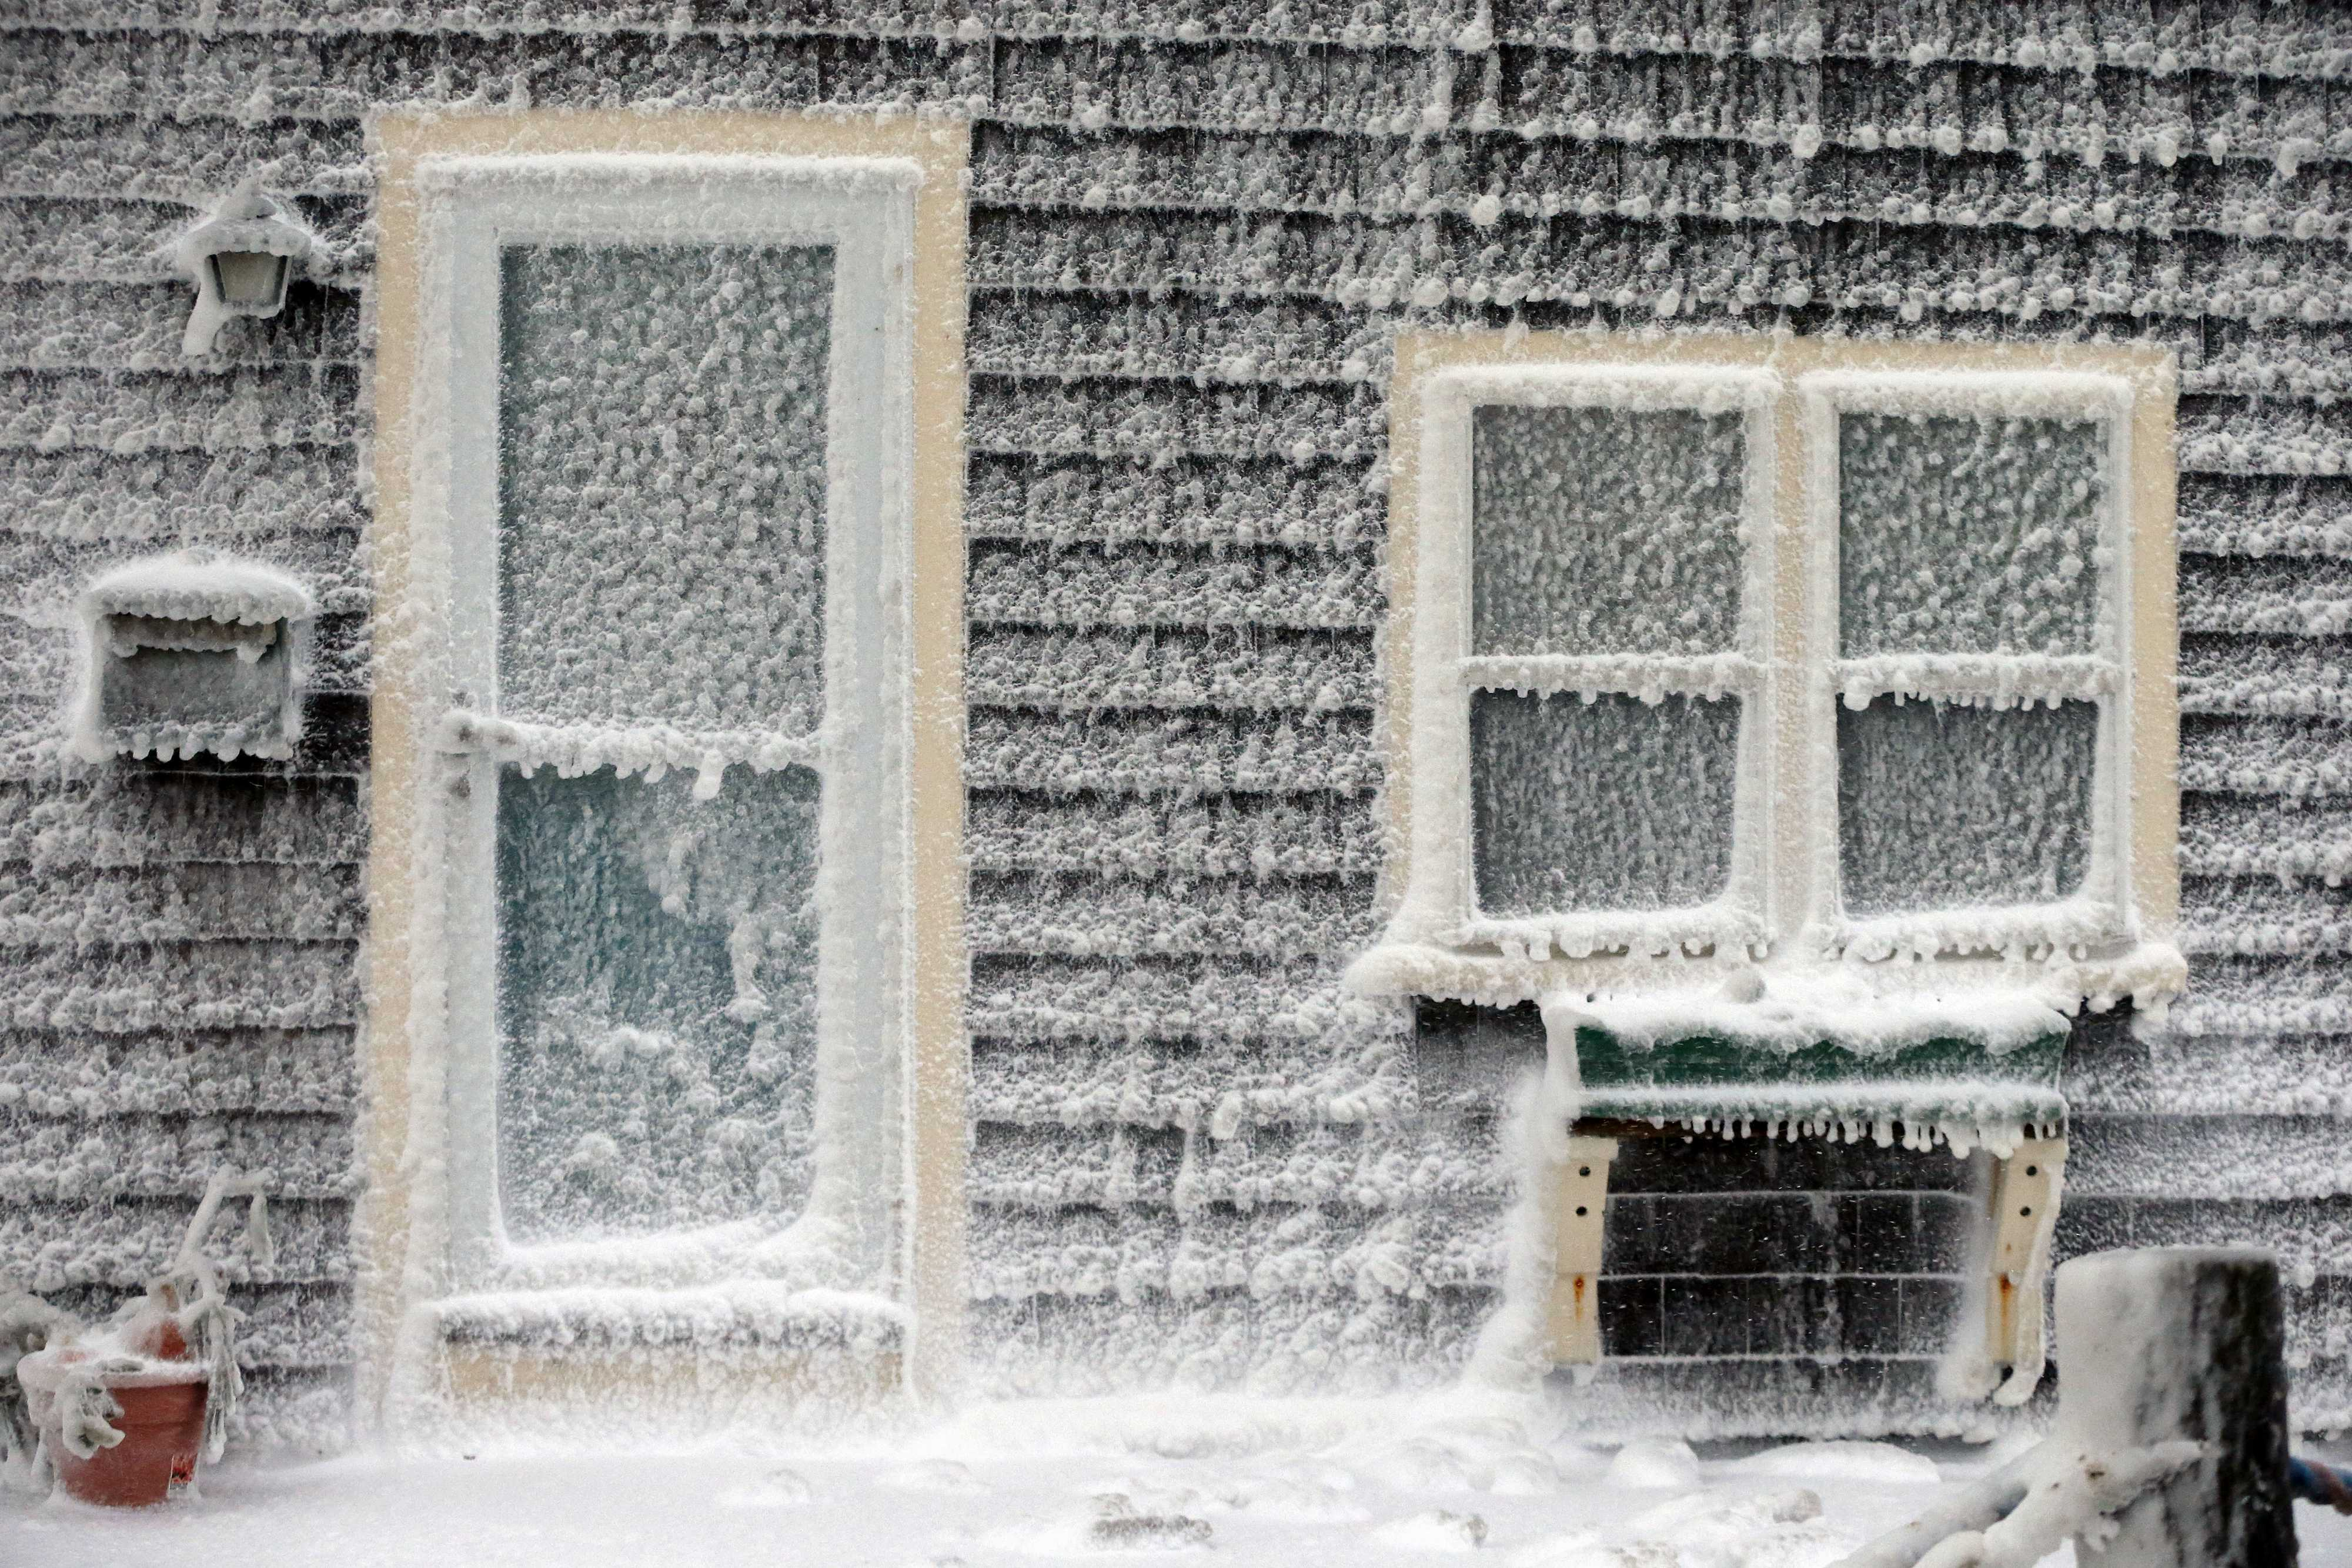 Ice from breaking waves coats a house along the shore in Scituate, Mass.